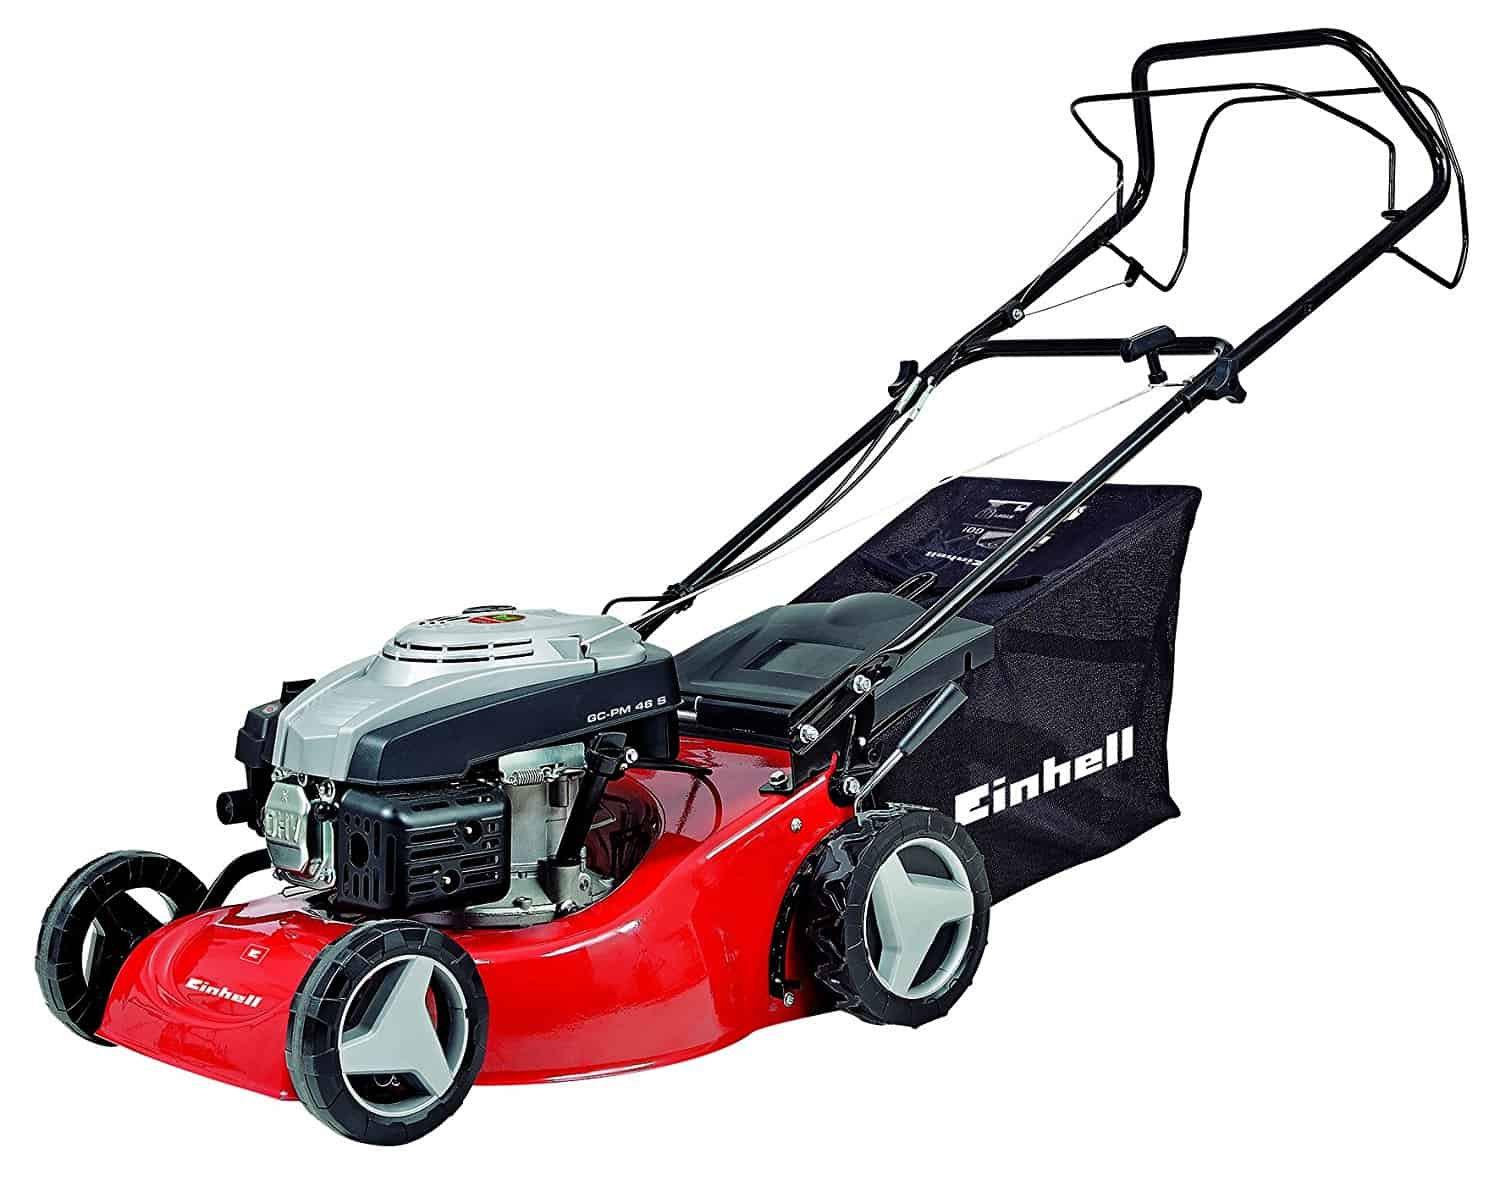 Best Lightweight Petrol Lawn Mower – Einhell